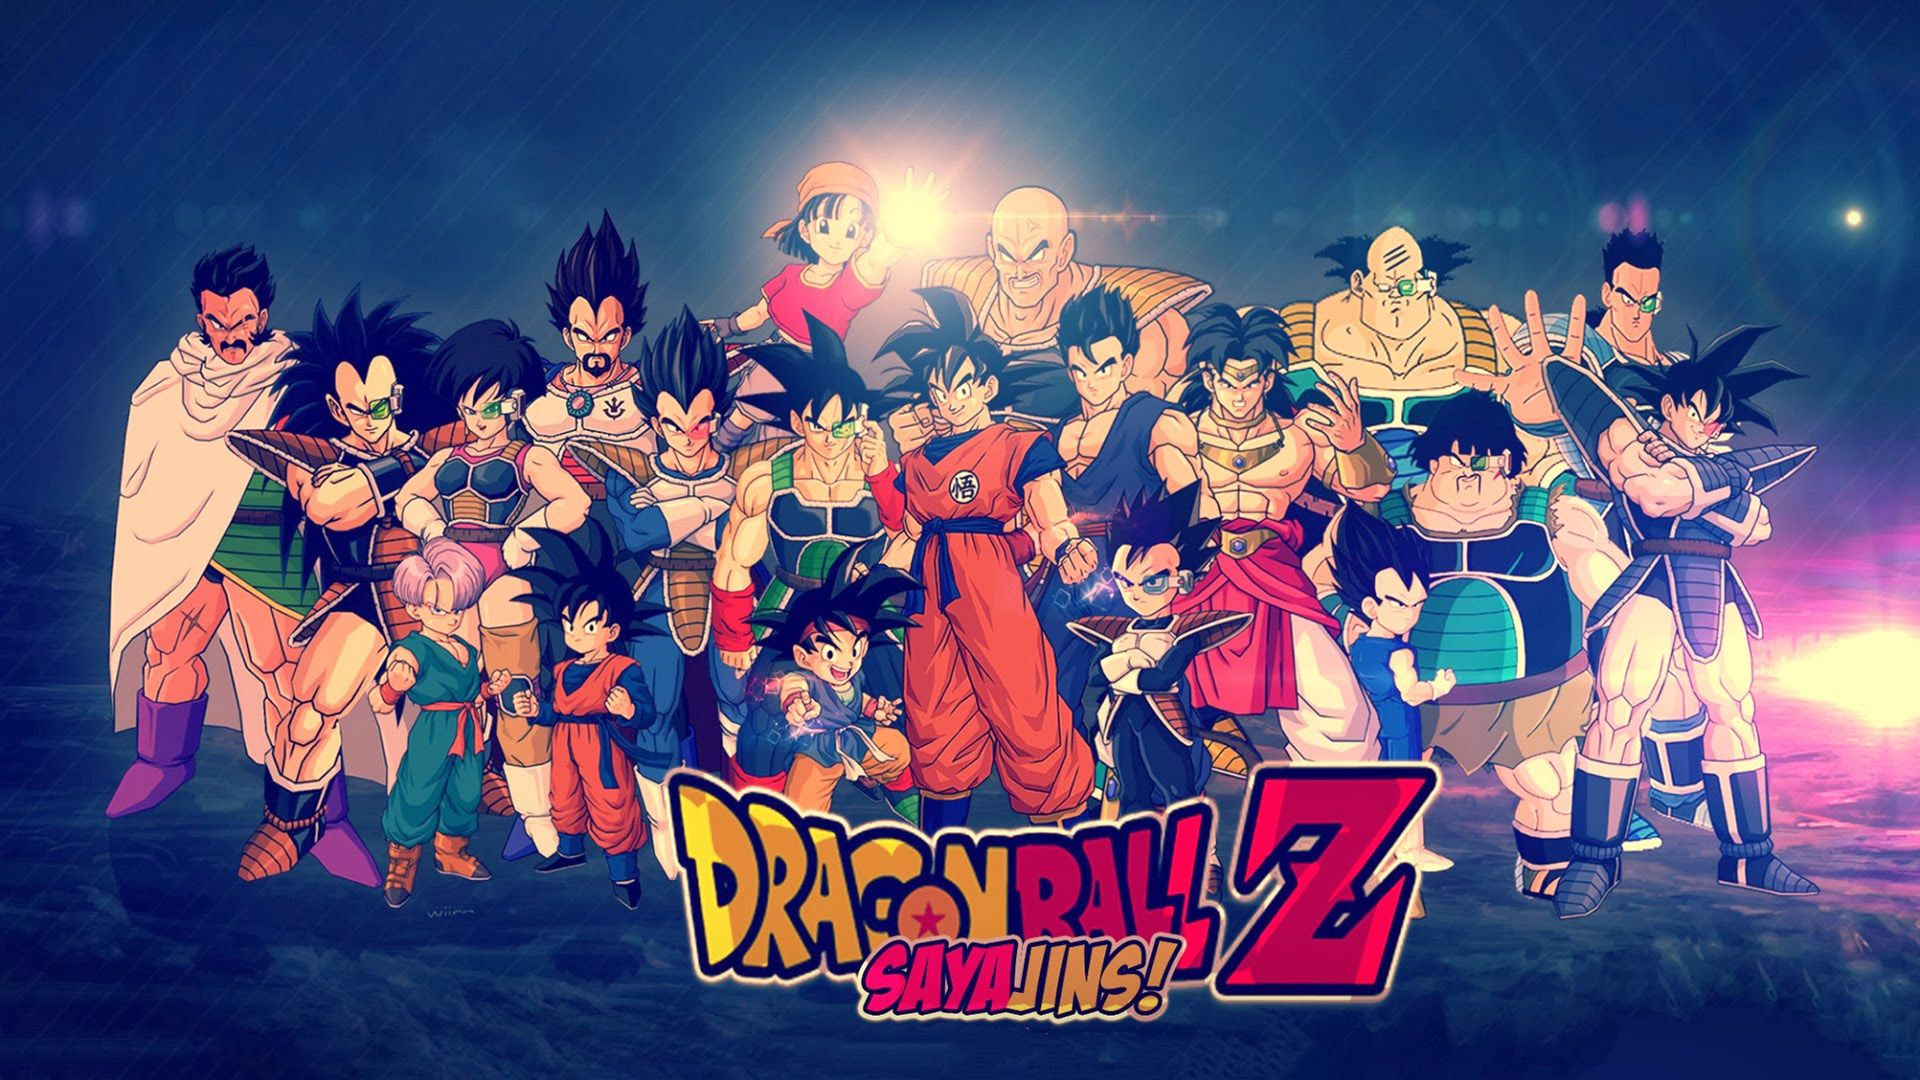 Dragon Ball Z Sayajins Wallpapers Imagenes Wallpapers Hd Dragon Ball Gt Dragones